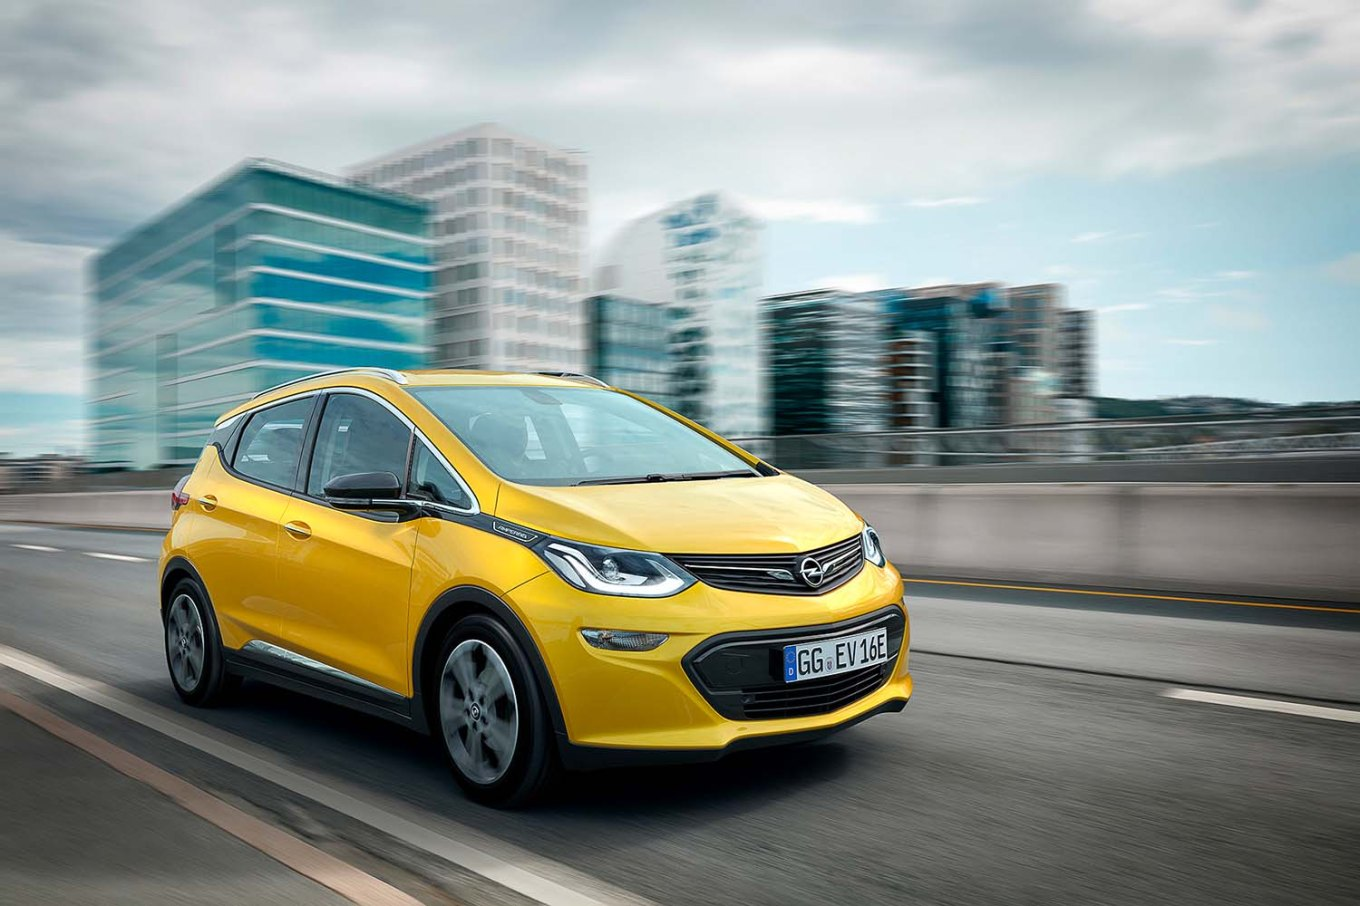 Opel Ampera-e: Fast charging for additional range